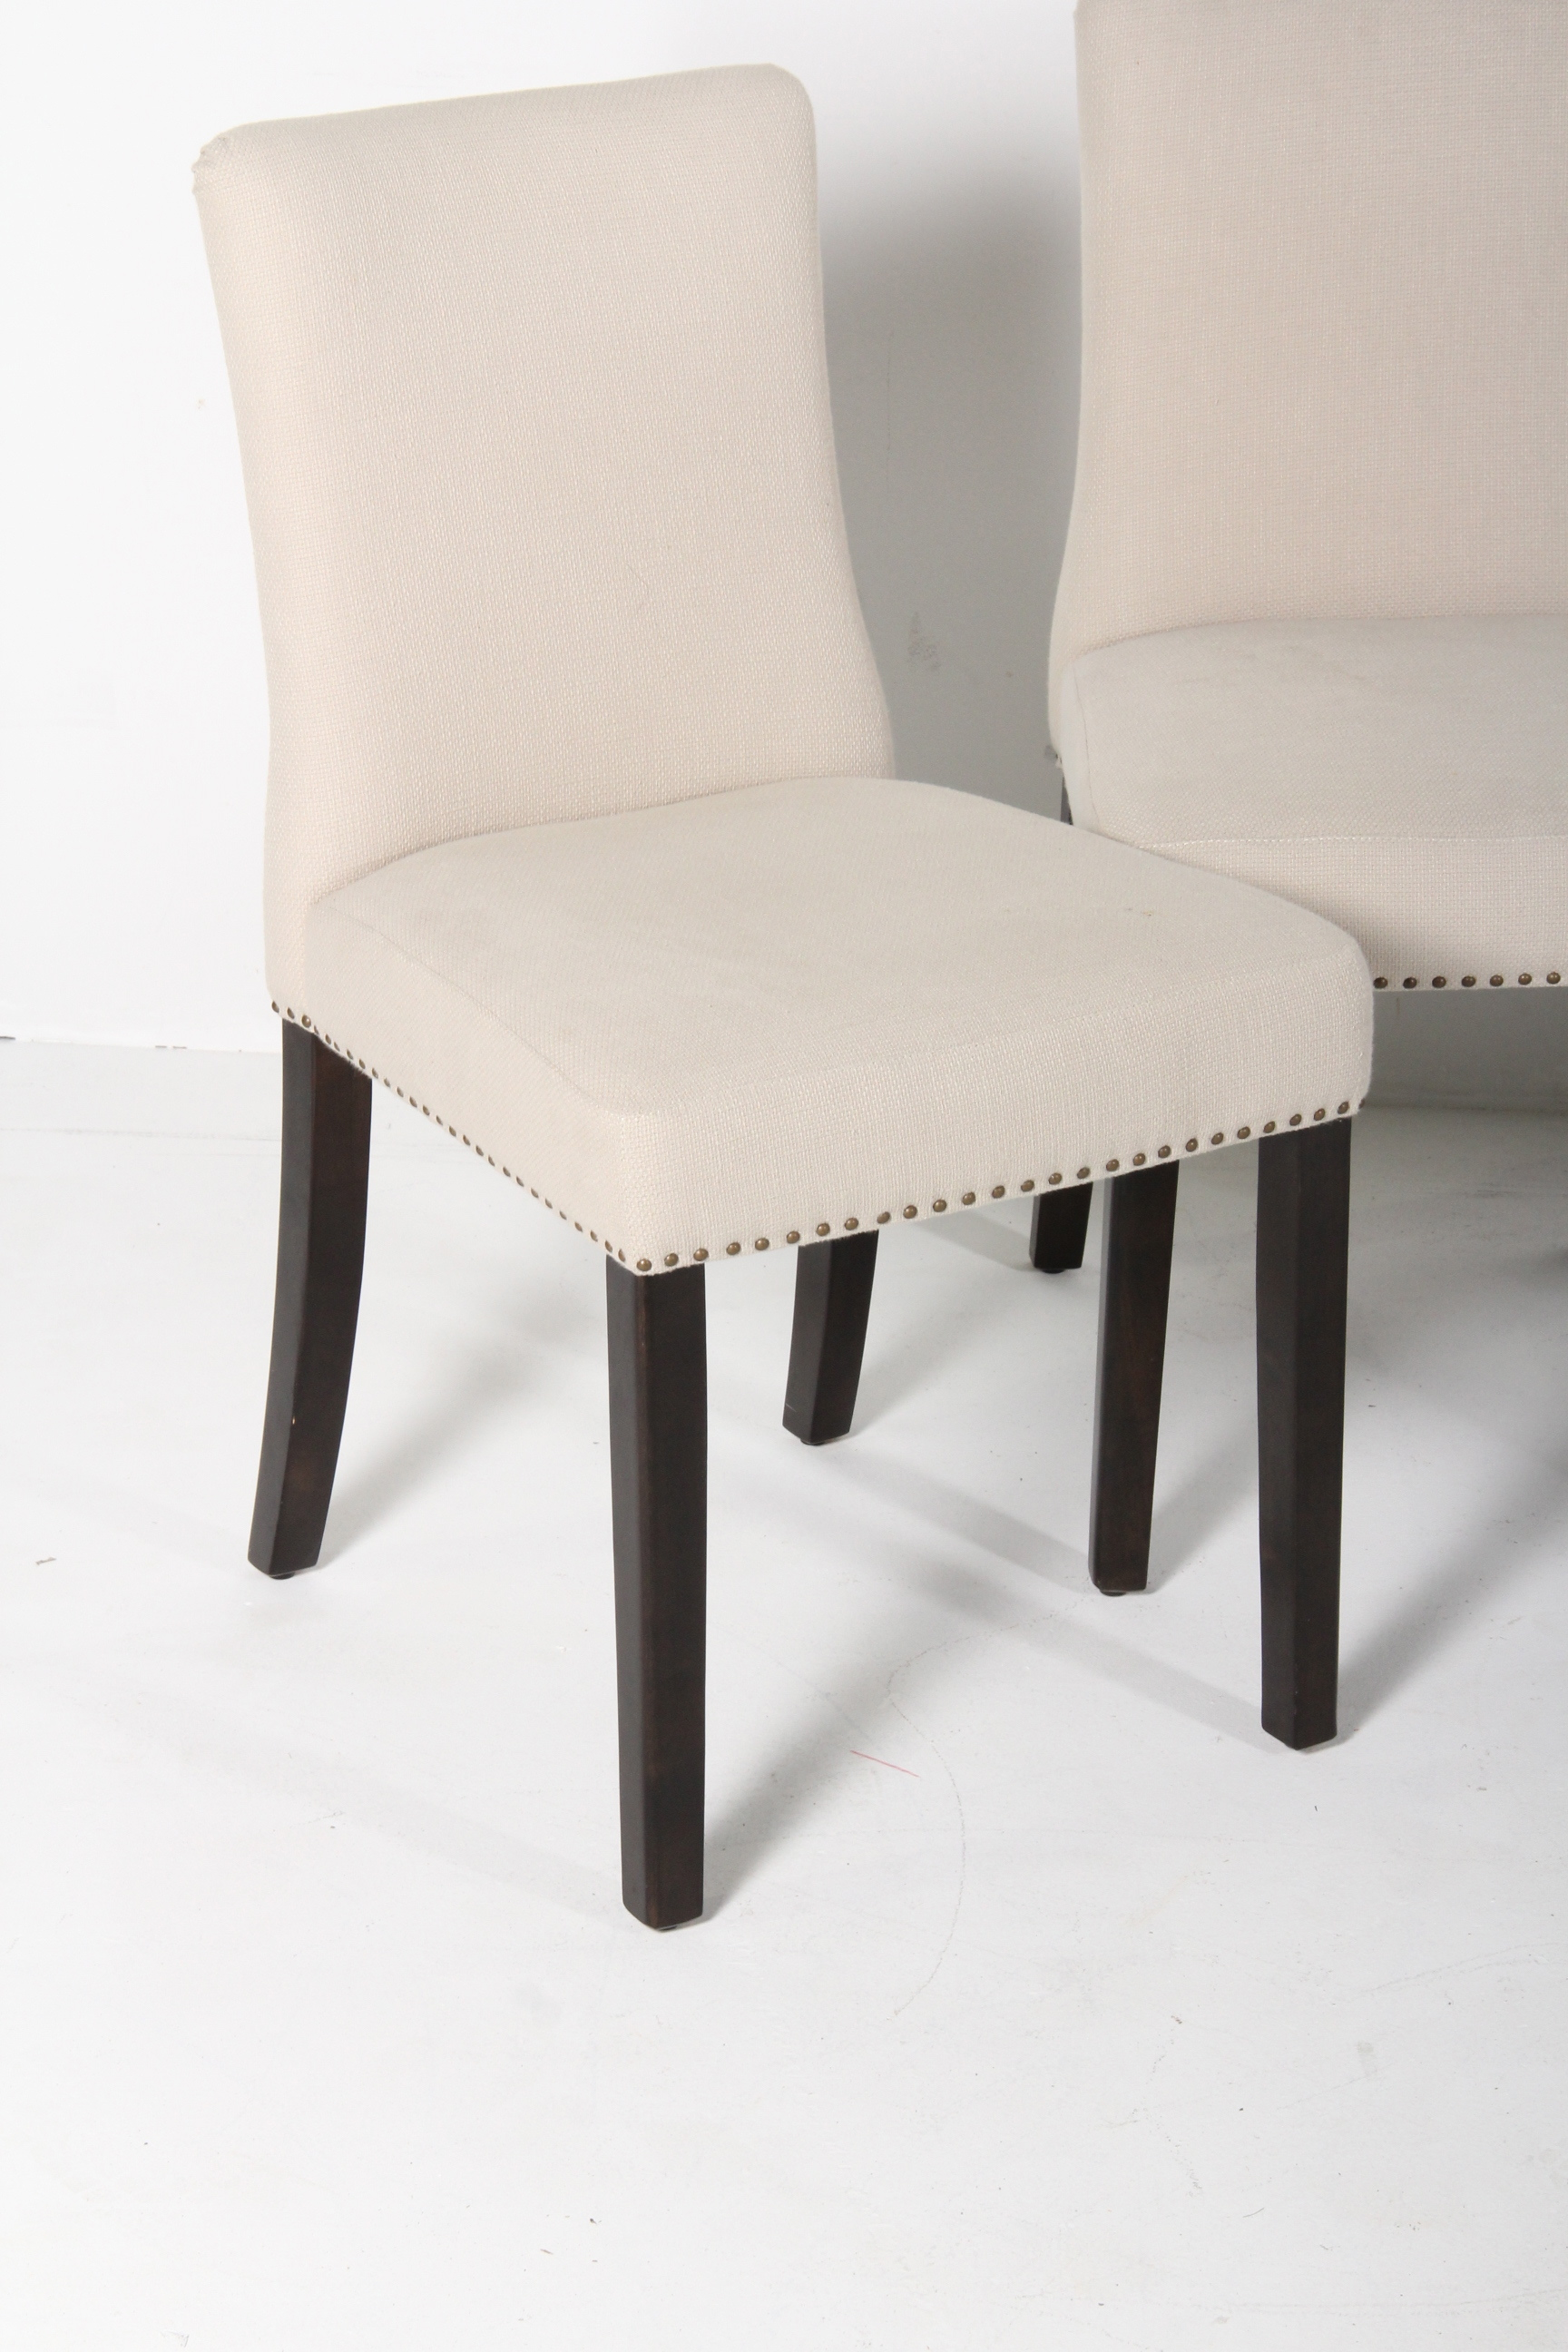 west elm chairs dining old high chair quartet of ebth